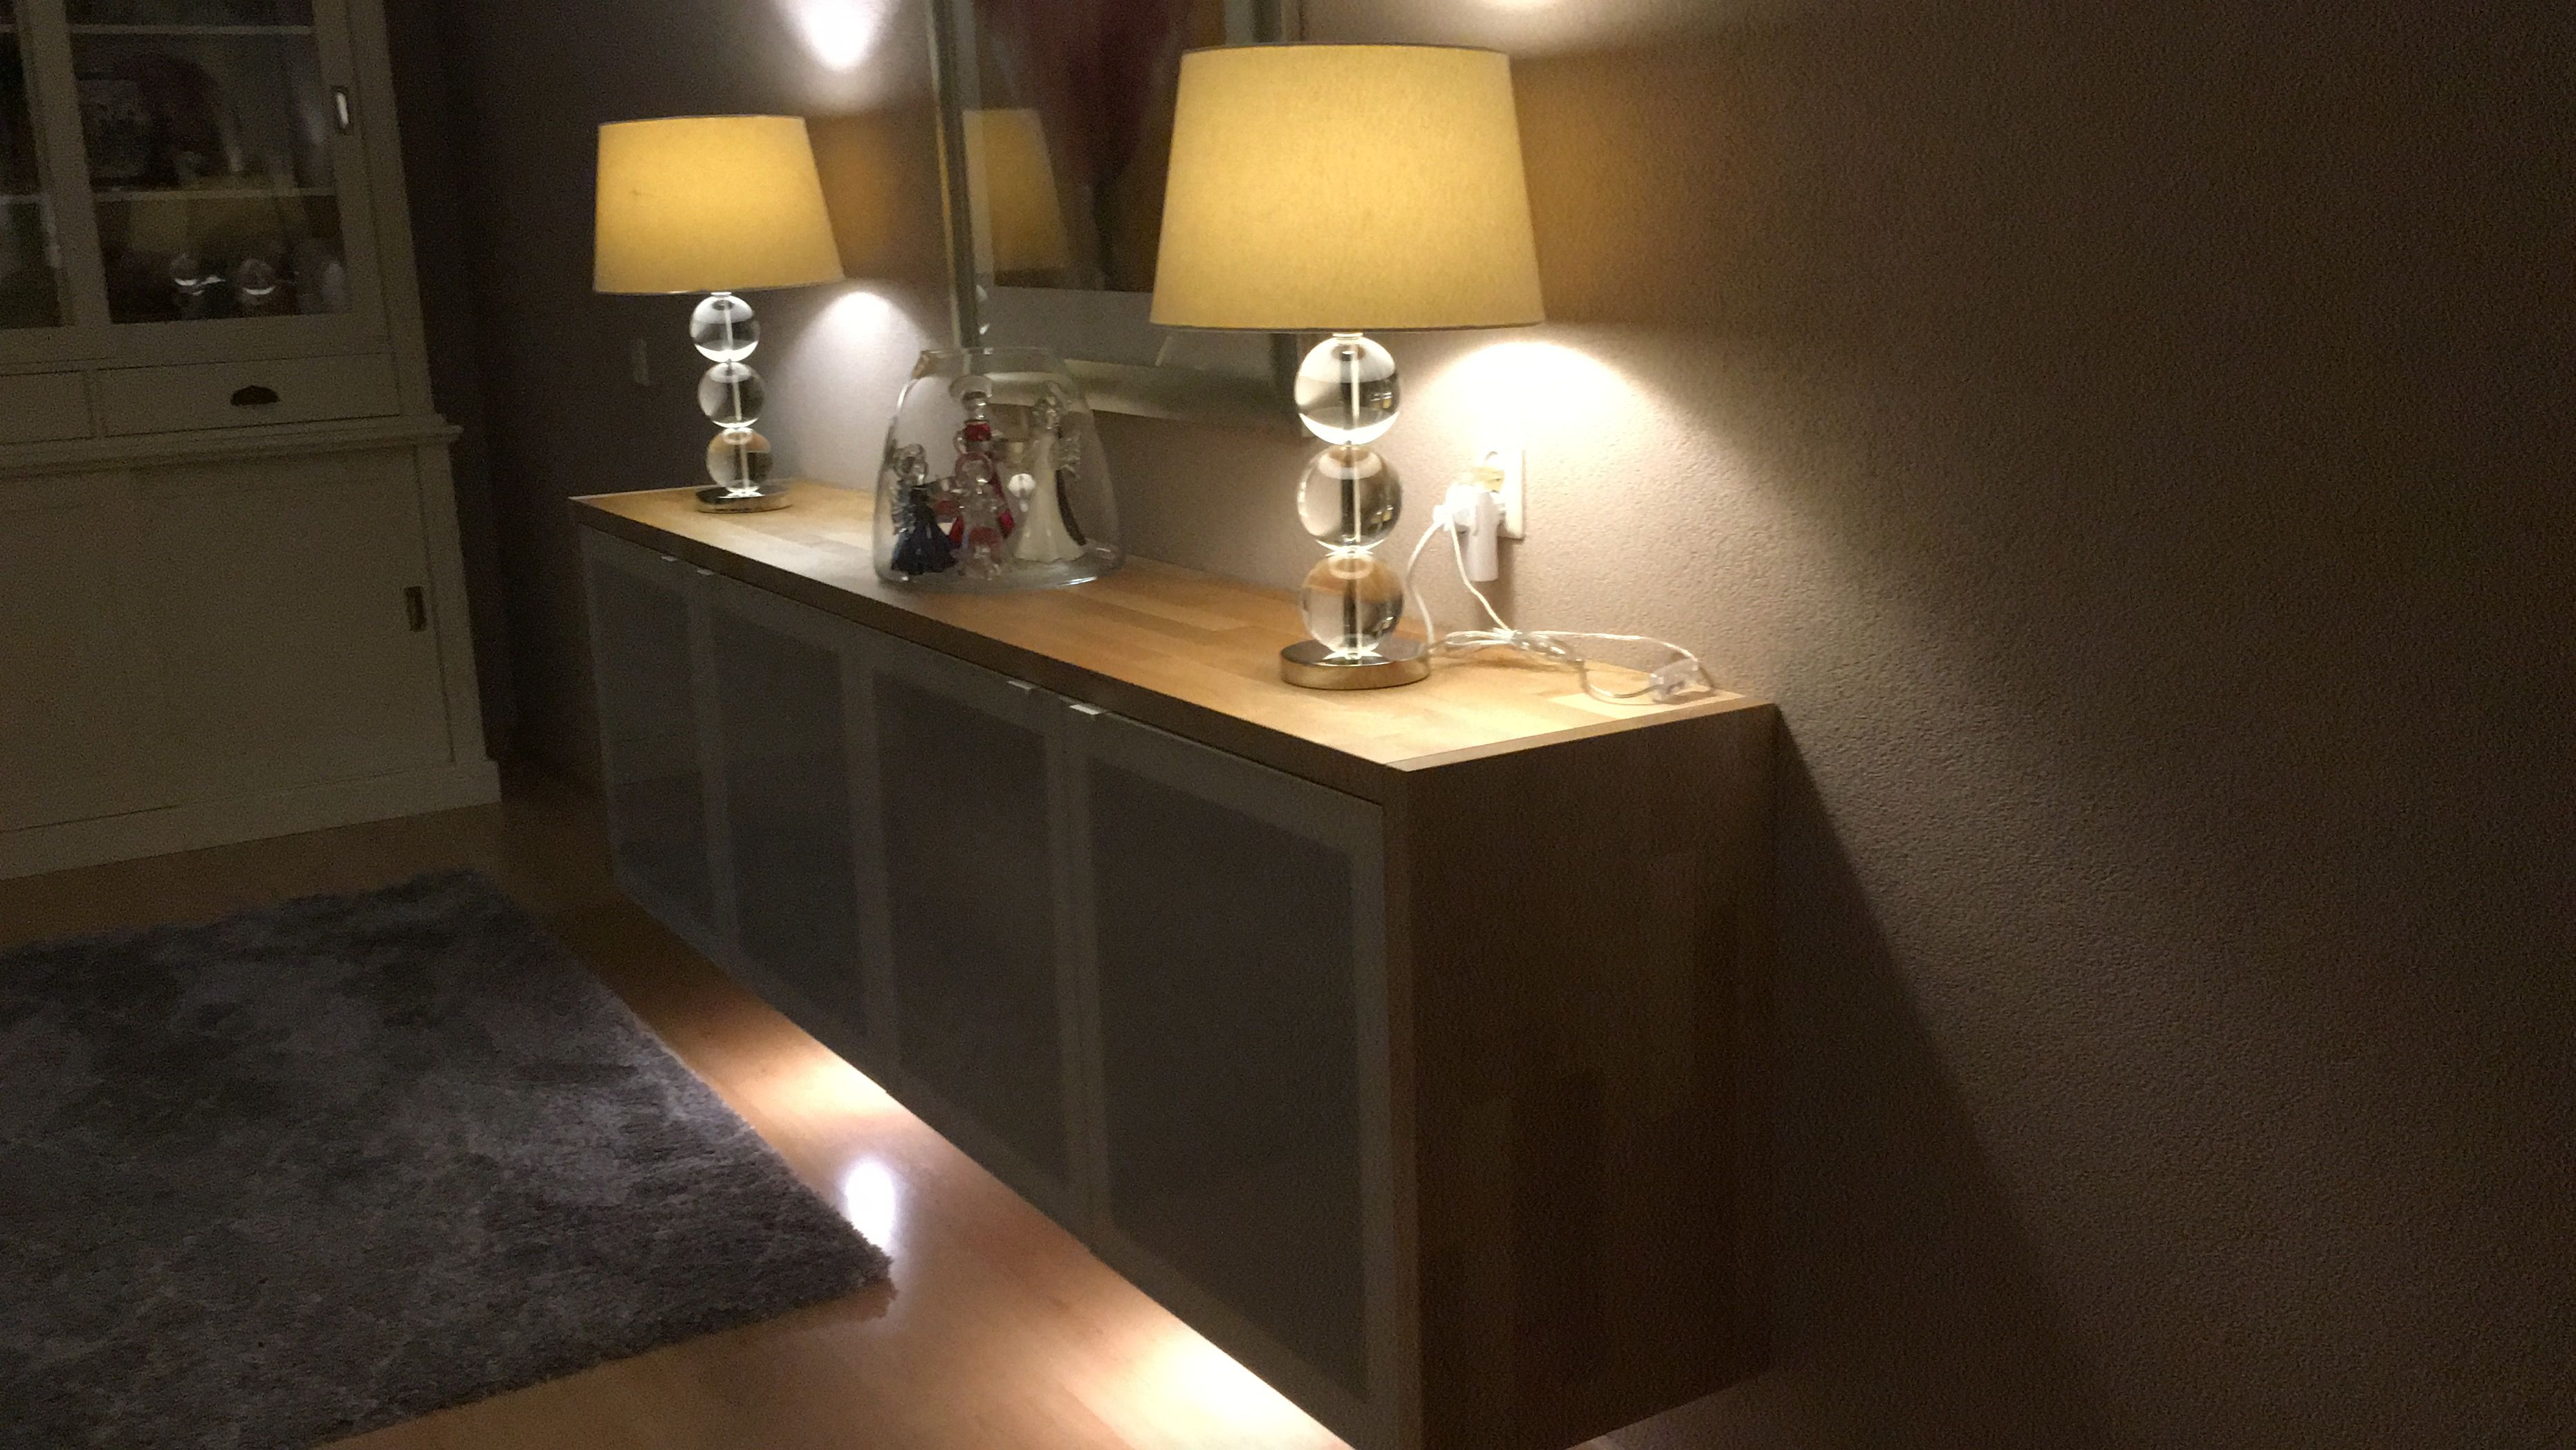 New Sideboard, Ikea units and Kitchen worktop